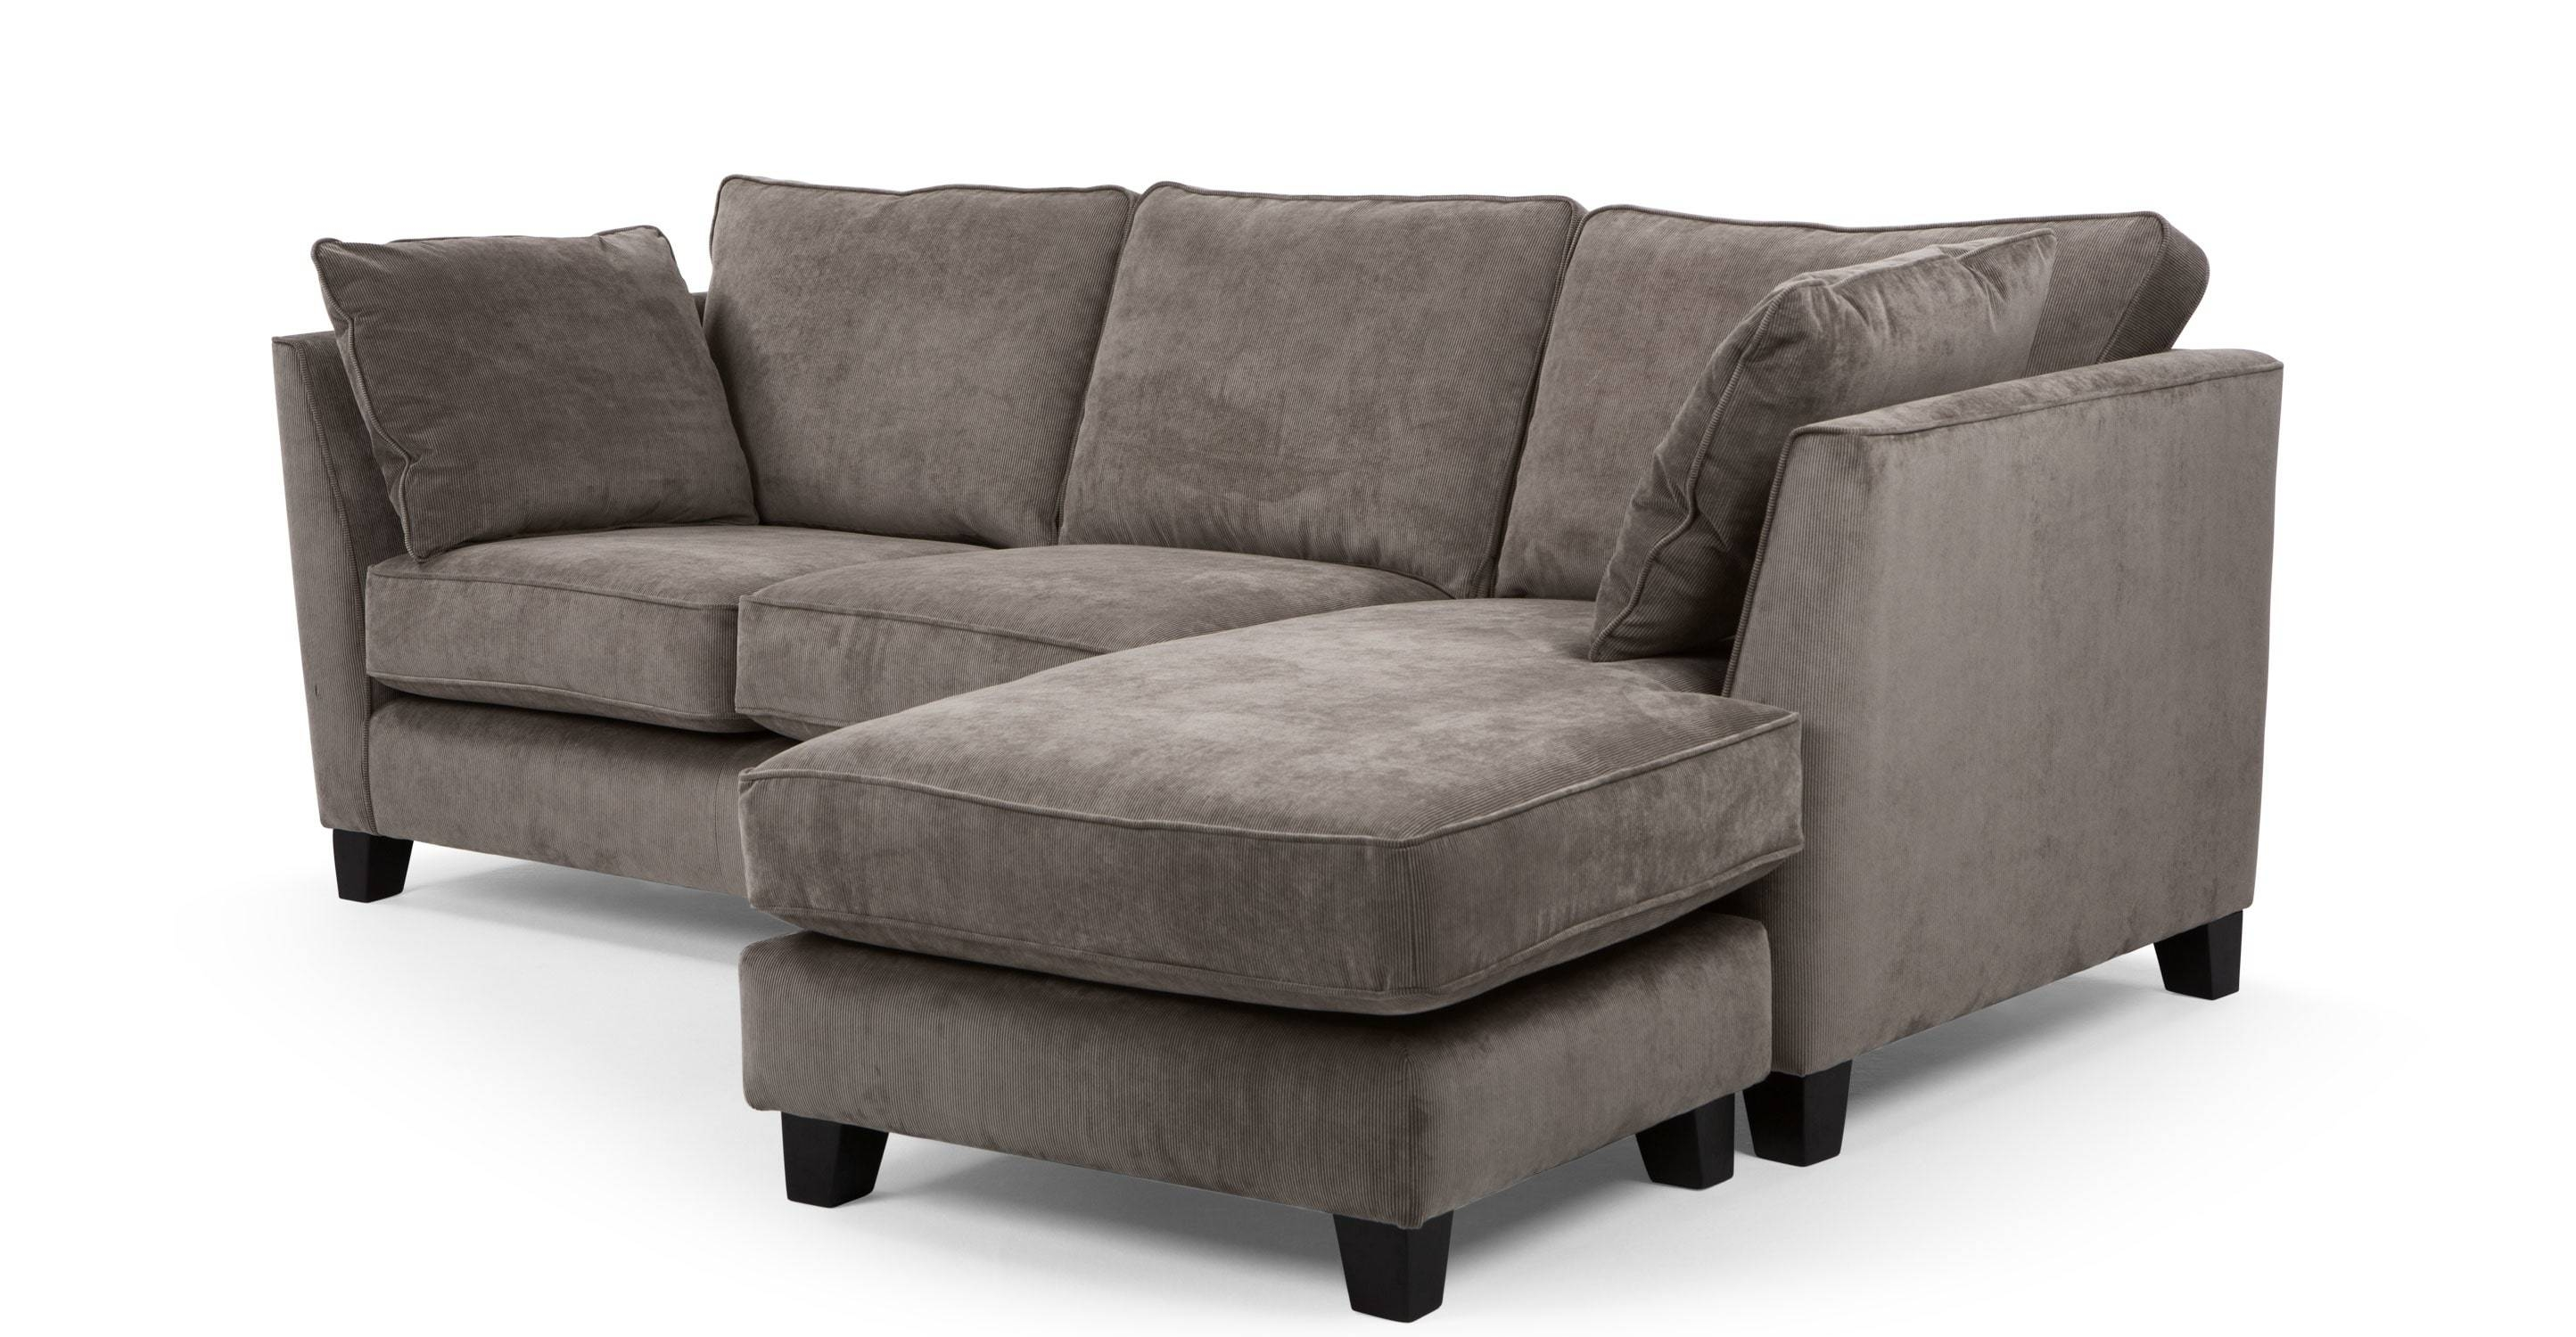 Wolseley Large Corner Sofa, Mid Grey Corduroy | Made inside Brown Corduroy Sofas (Image 15 of 15)